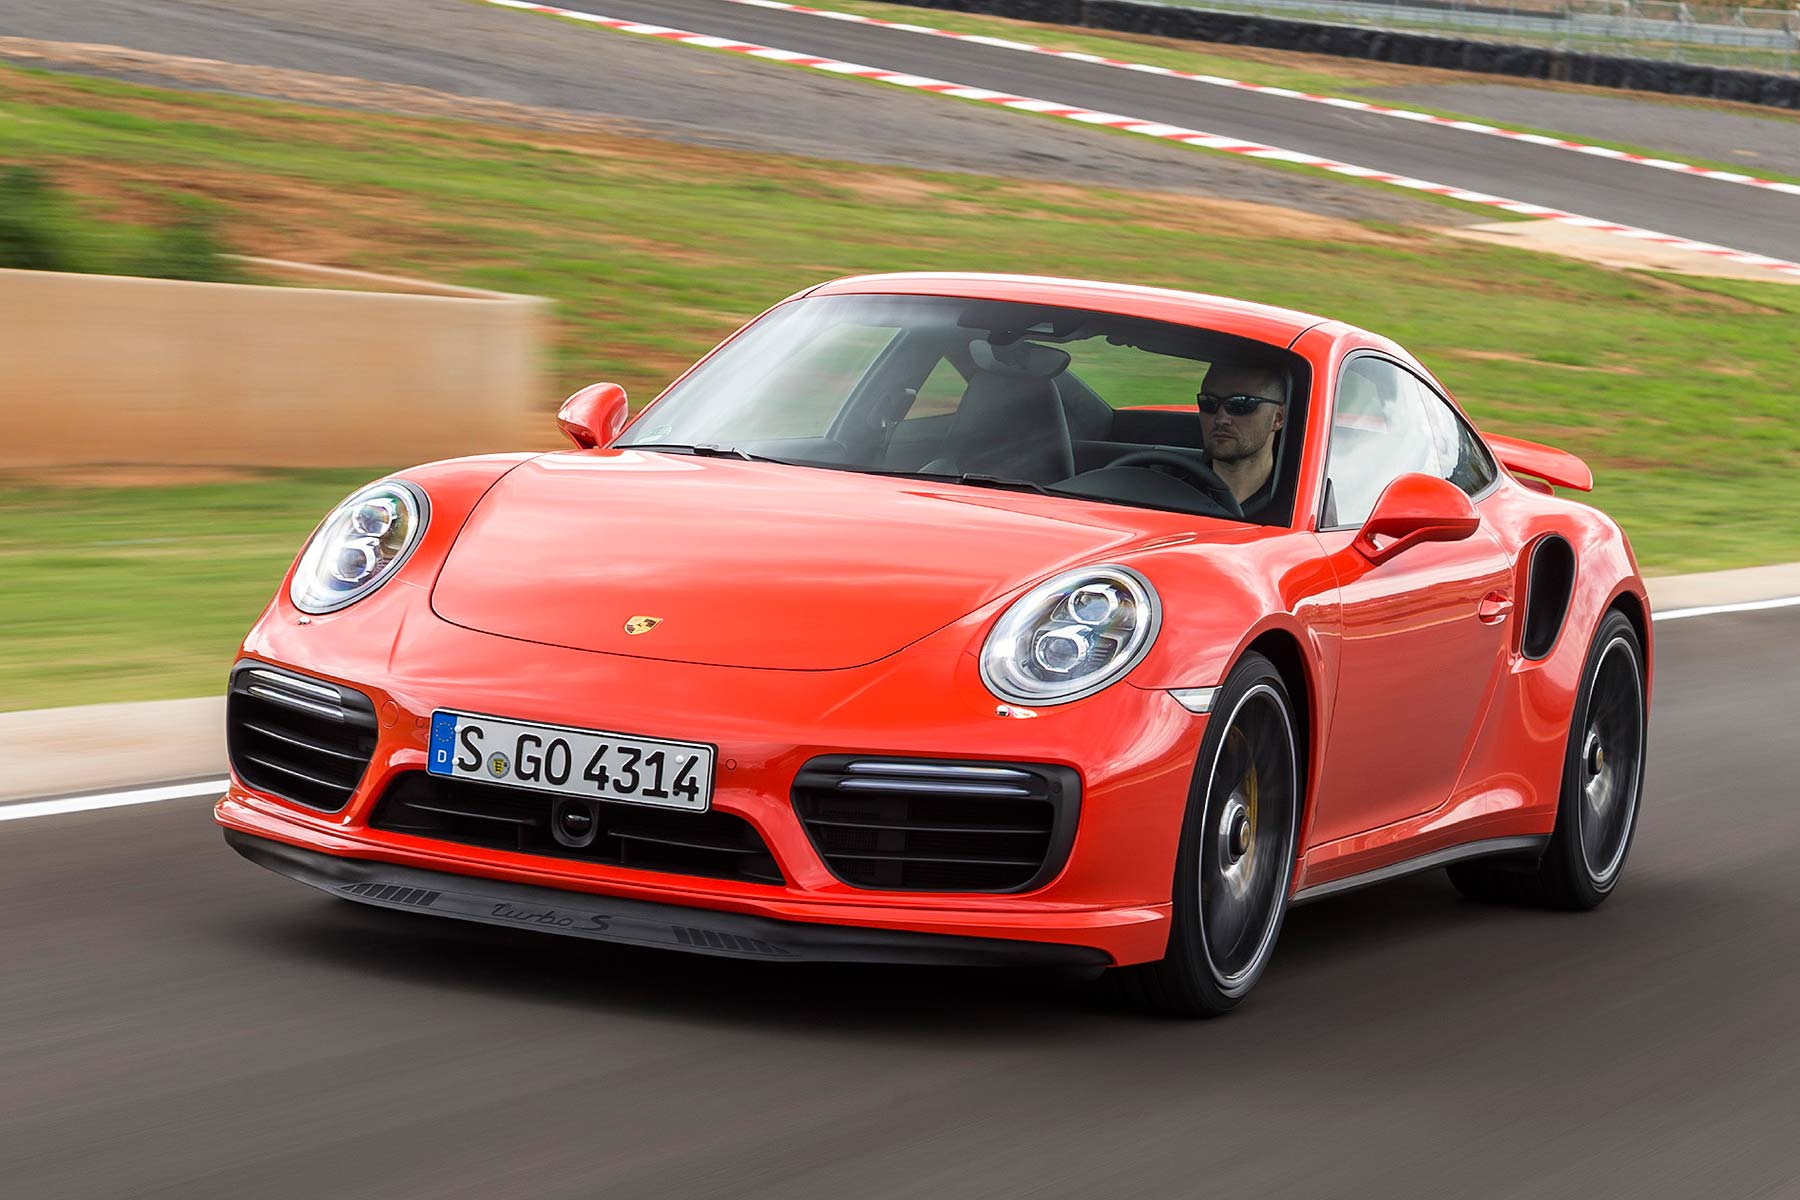 2016 porsche 911 turbo s review first drive motoring research. Black Bedroom Furniture Sets. Home Design Ideas